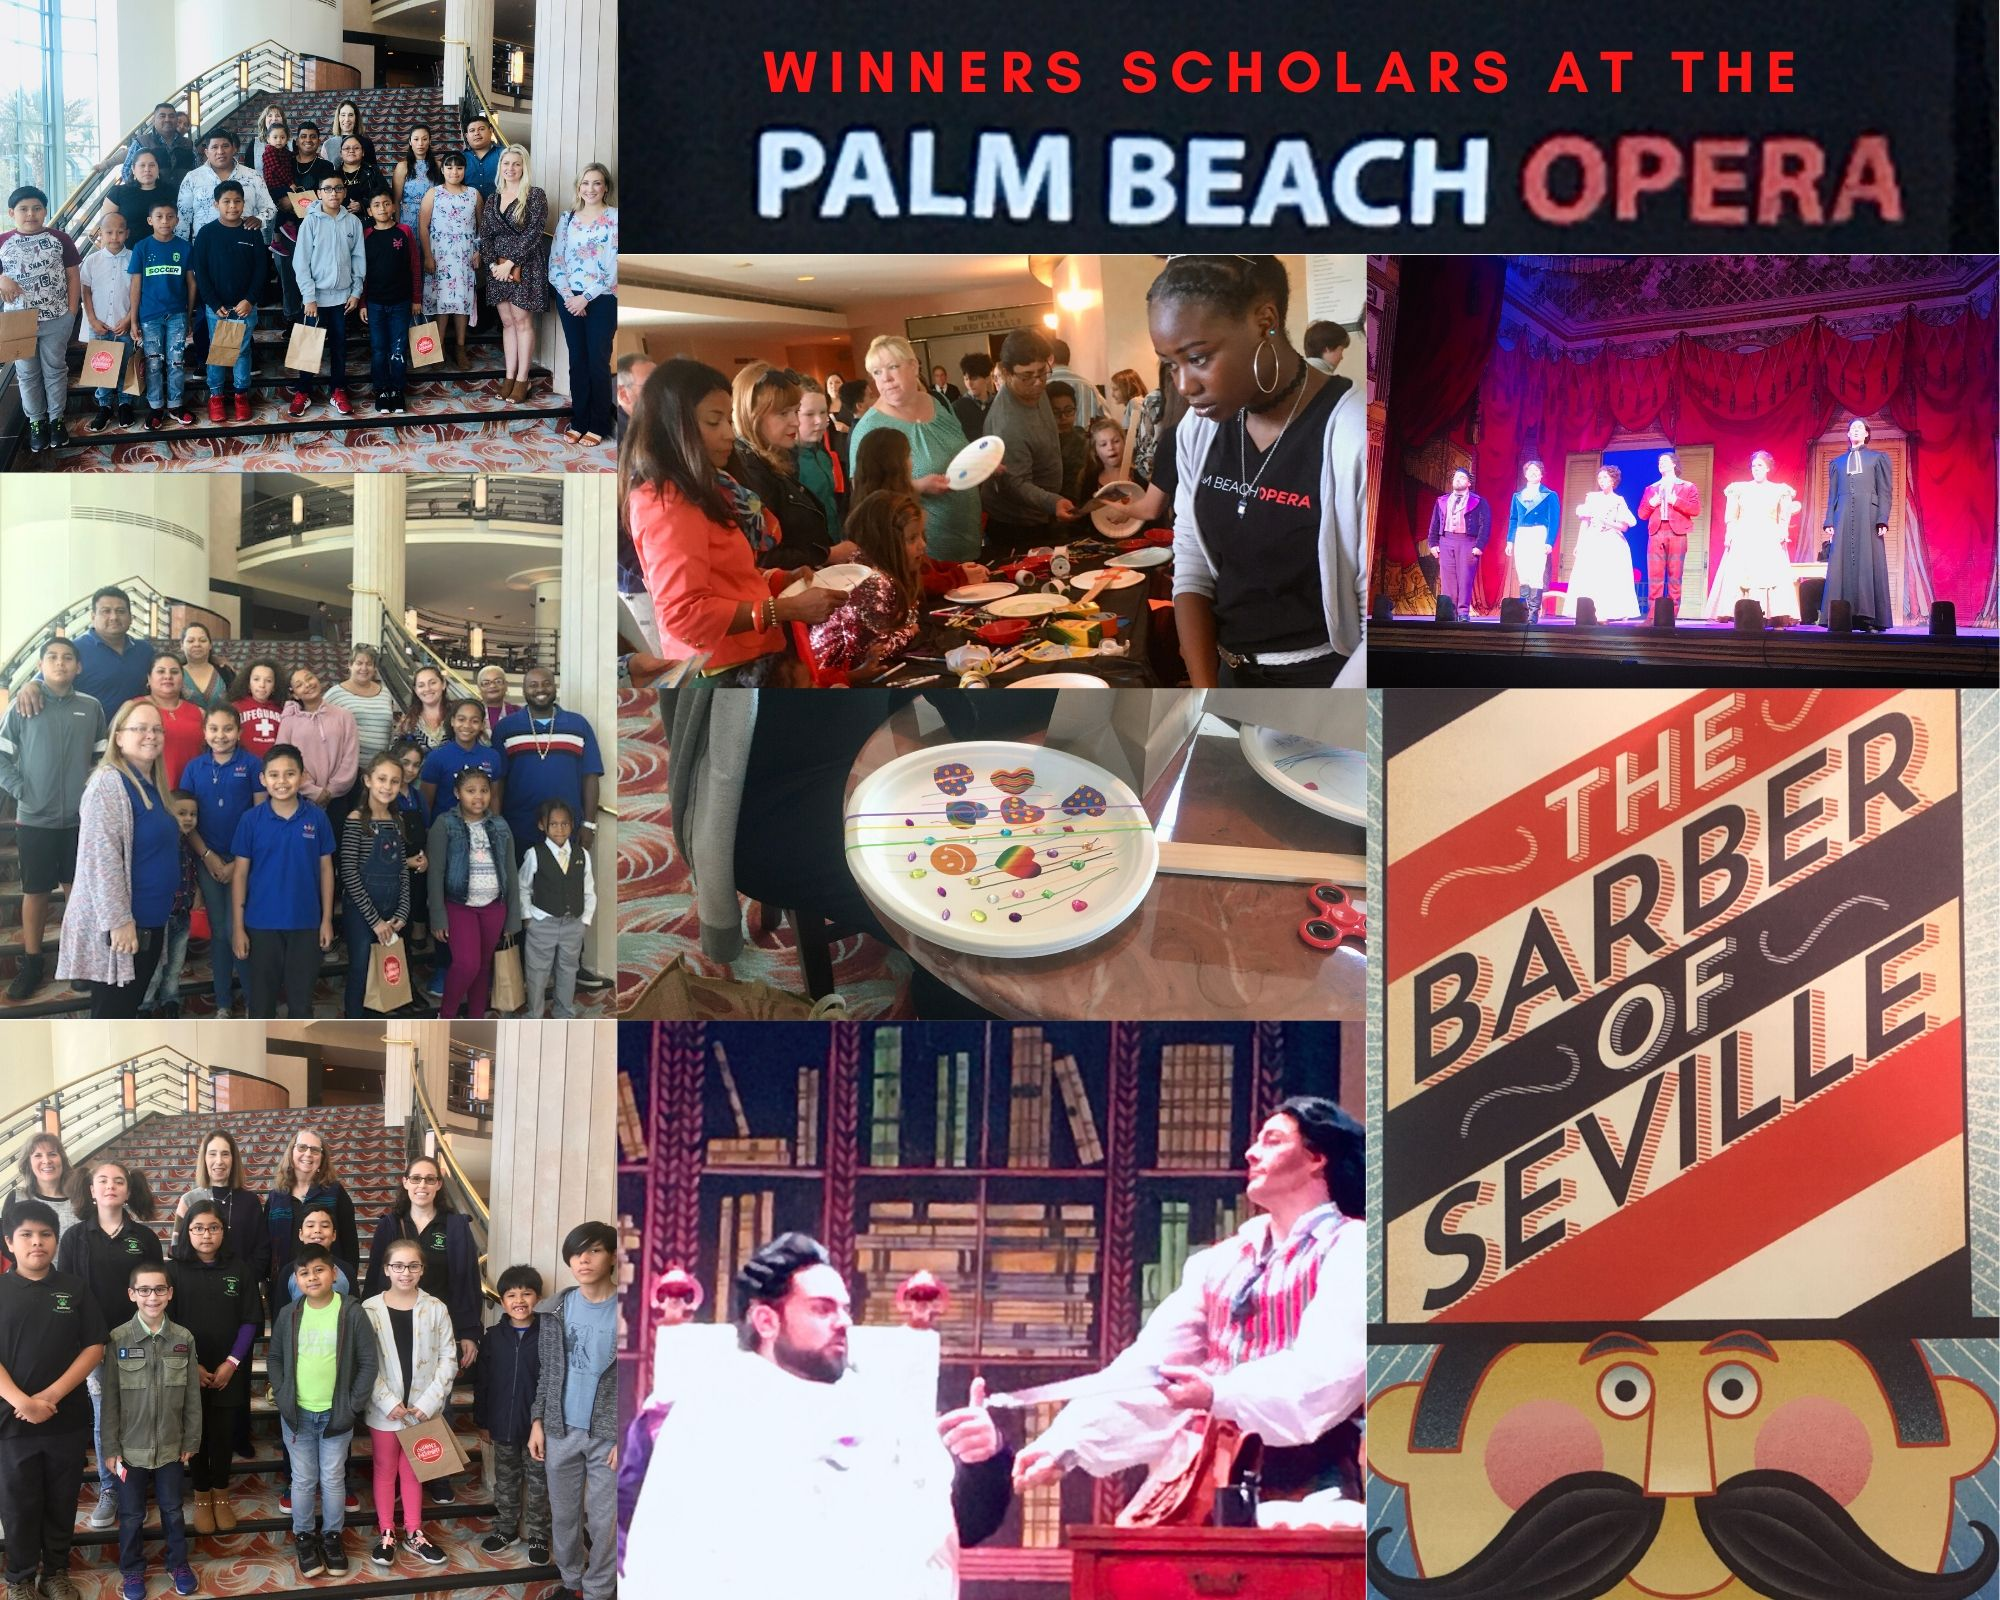 Winners Scholars Enjoy the Children's Performance at the Palm Beach Opera!